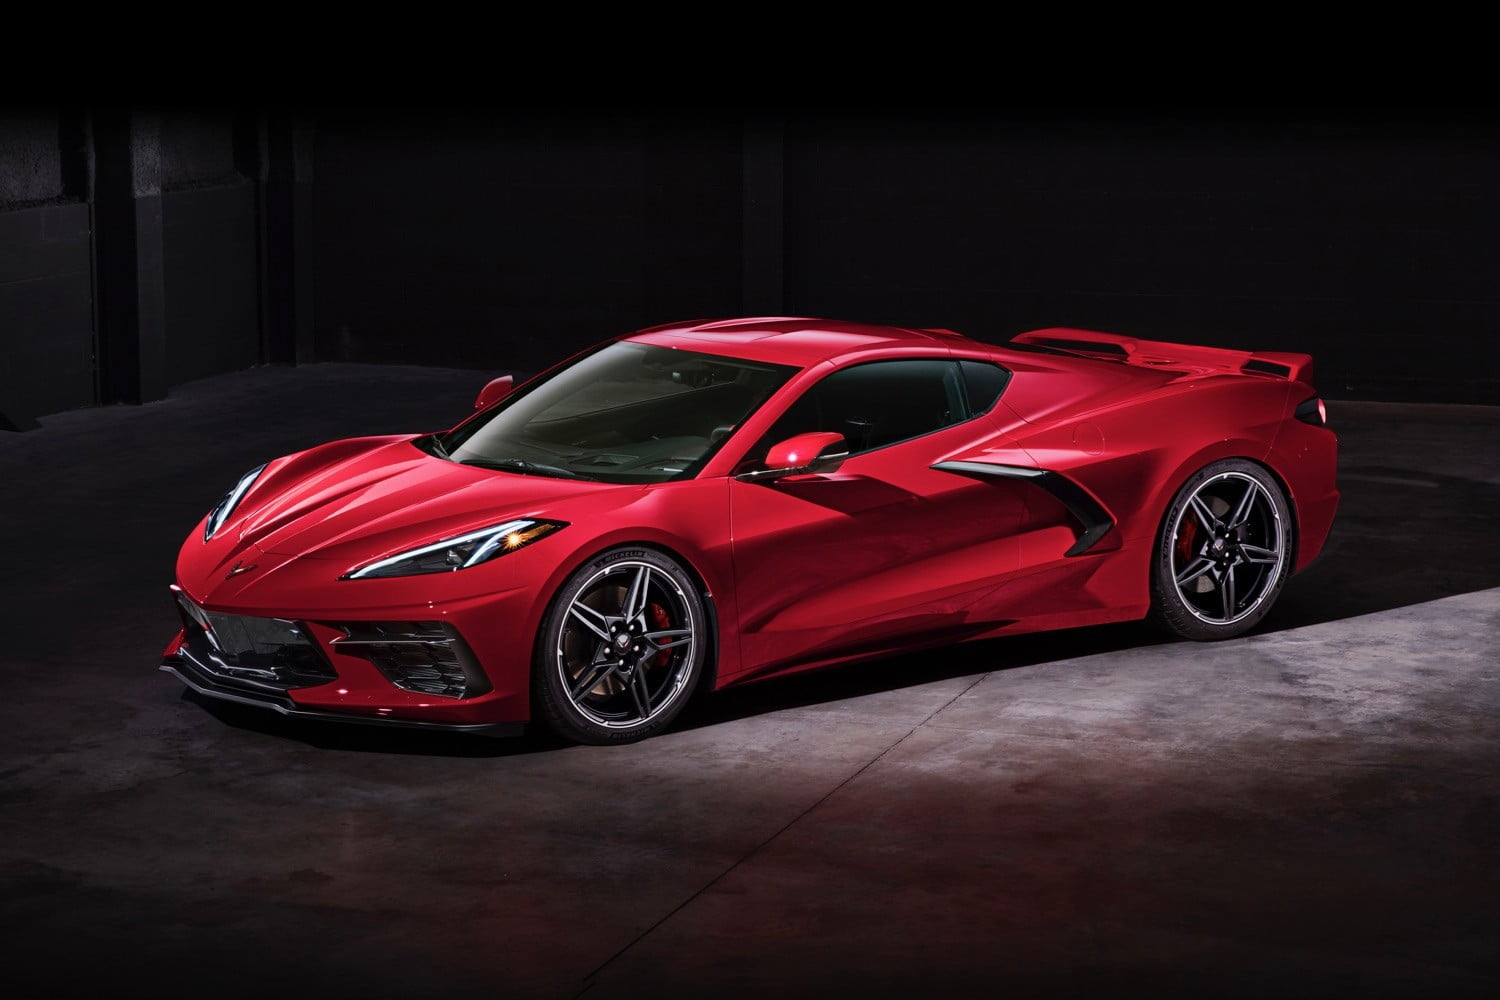 2020 chevrolet corvette c8 a loss leader for general motors report says stingray